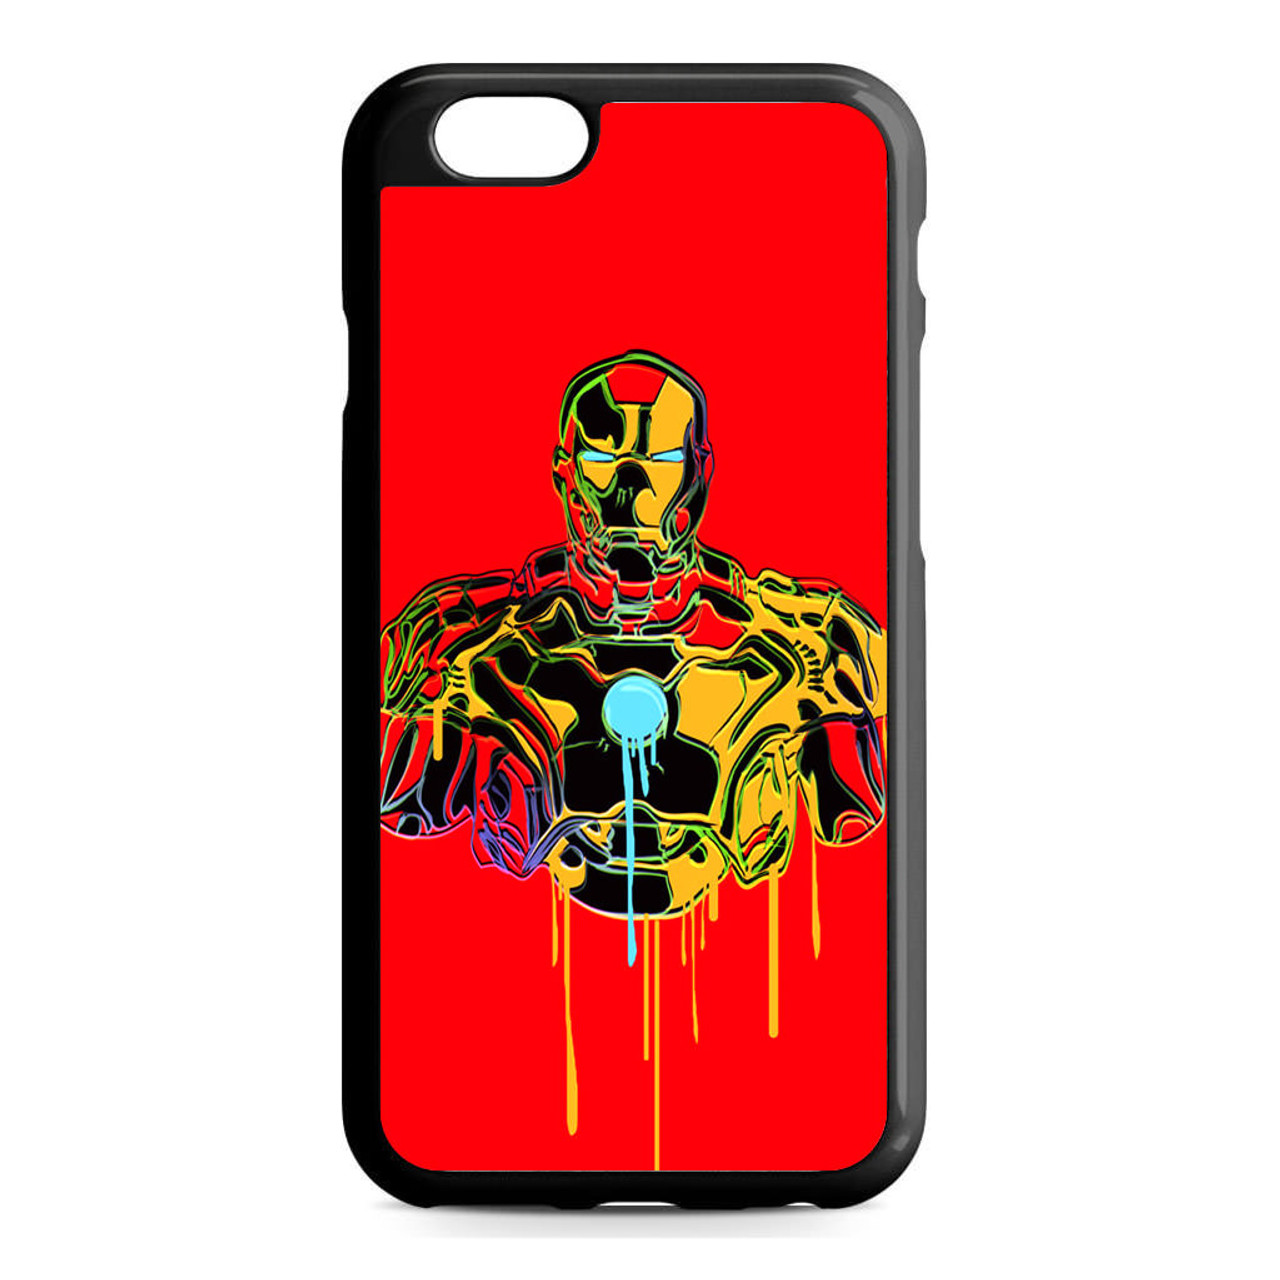 low priced 3f9a3 de230 Iron Man Melting iPhone 6/6S Case